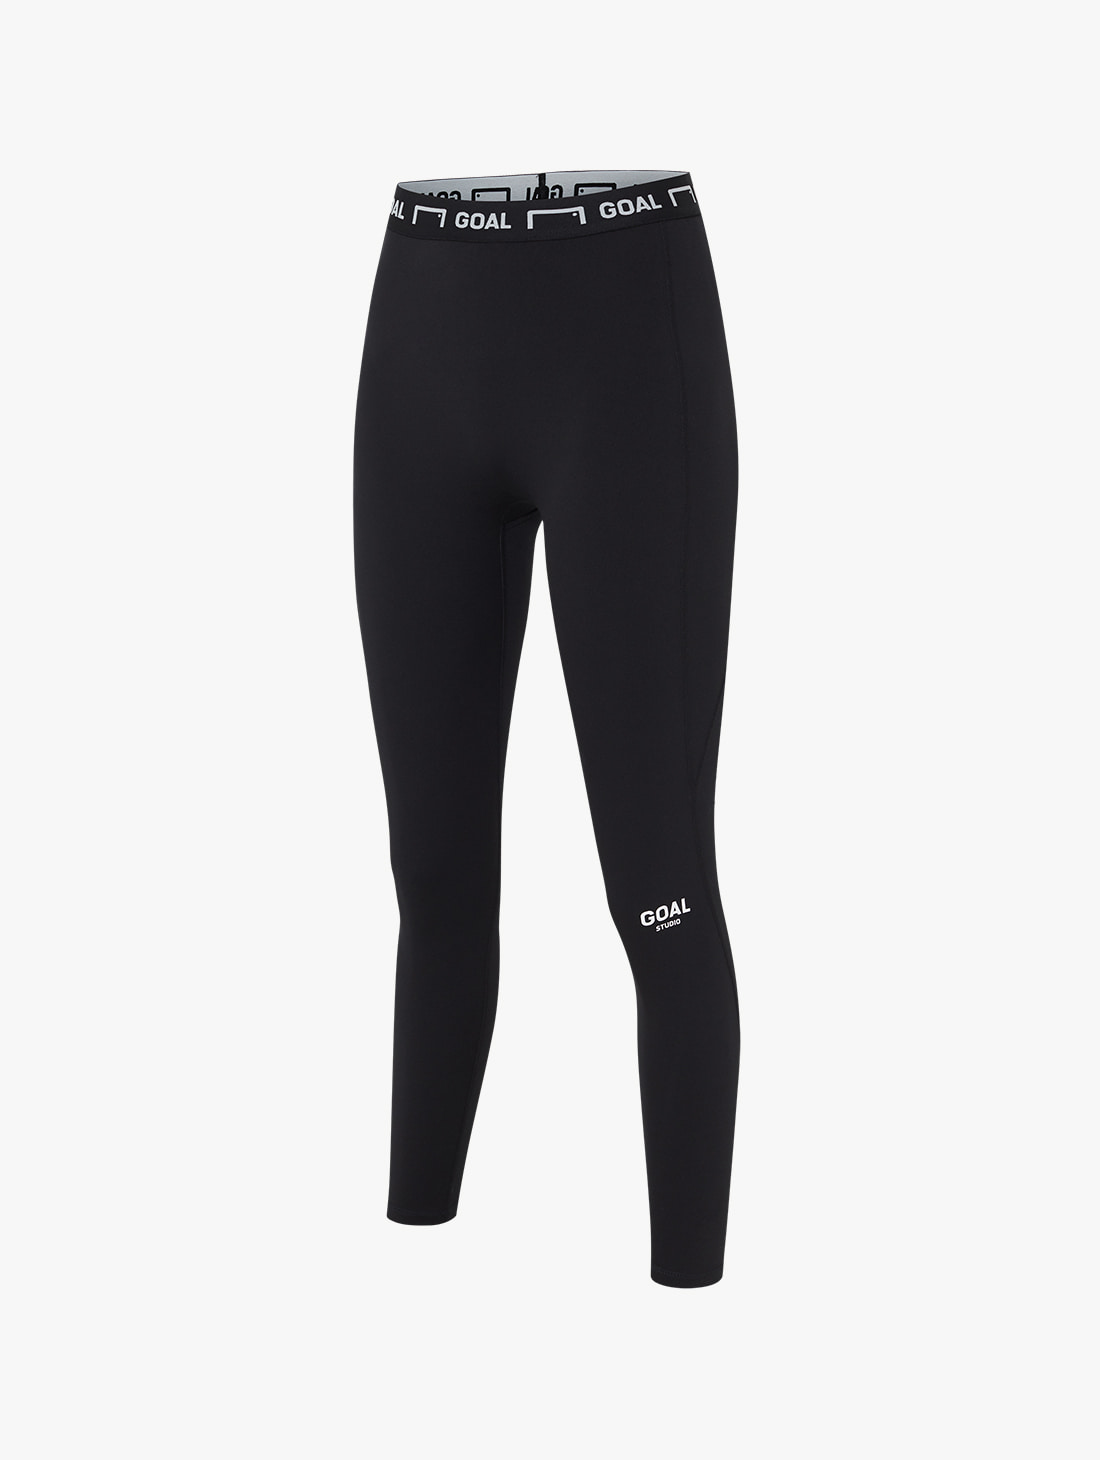 GOALSTUDIO WOMEN'S LEGGINGS